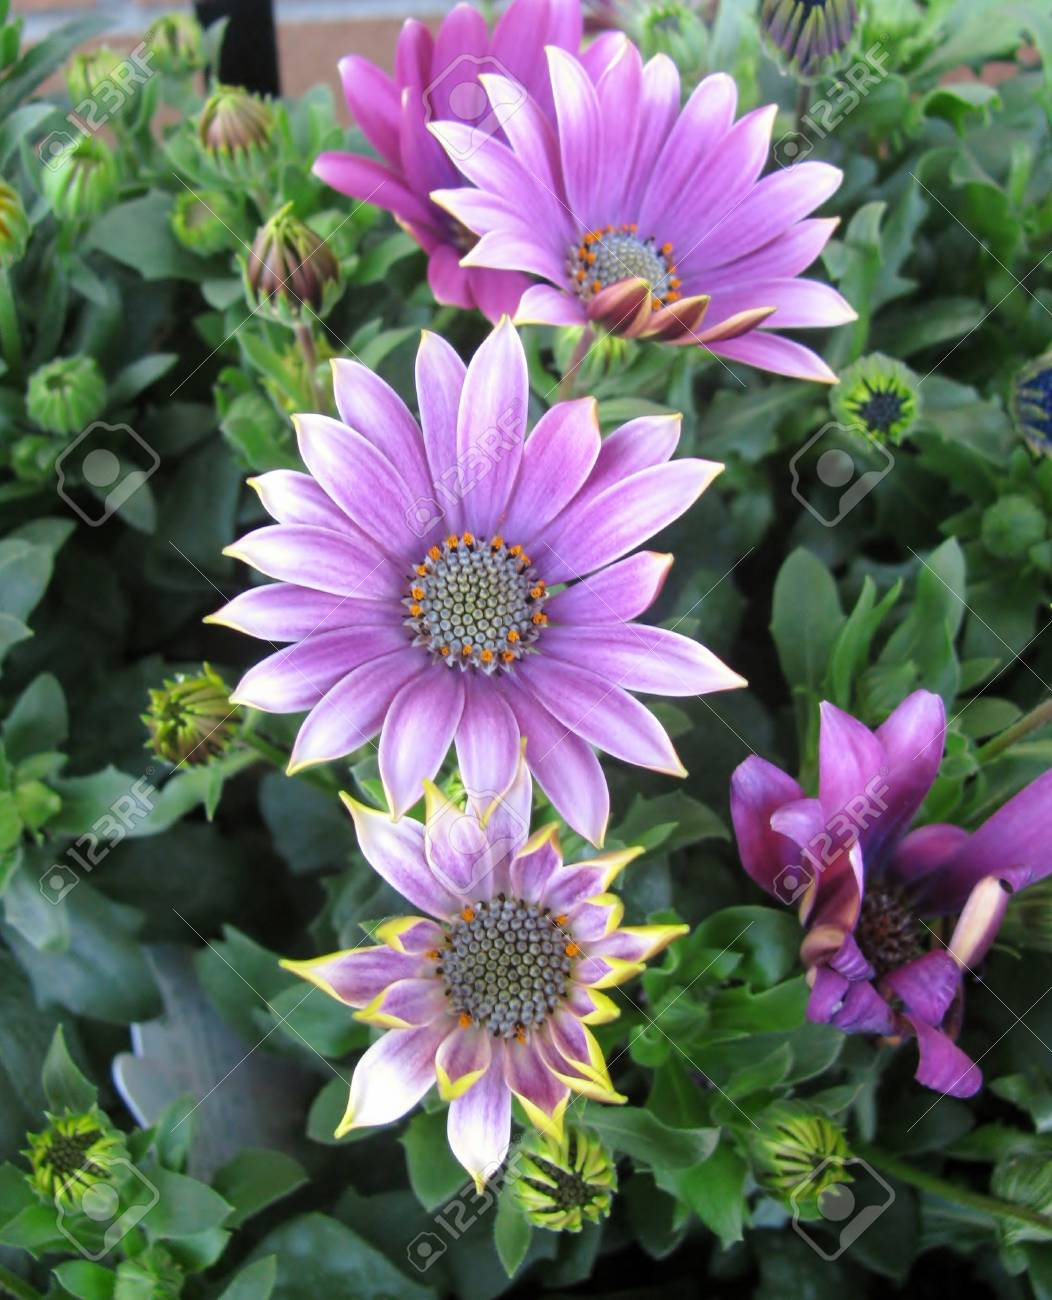 Purple african daisy flowers in the garden stock photo picture and purple african daisy flowers in the garden stock photo 95057929 izmirmasajfo